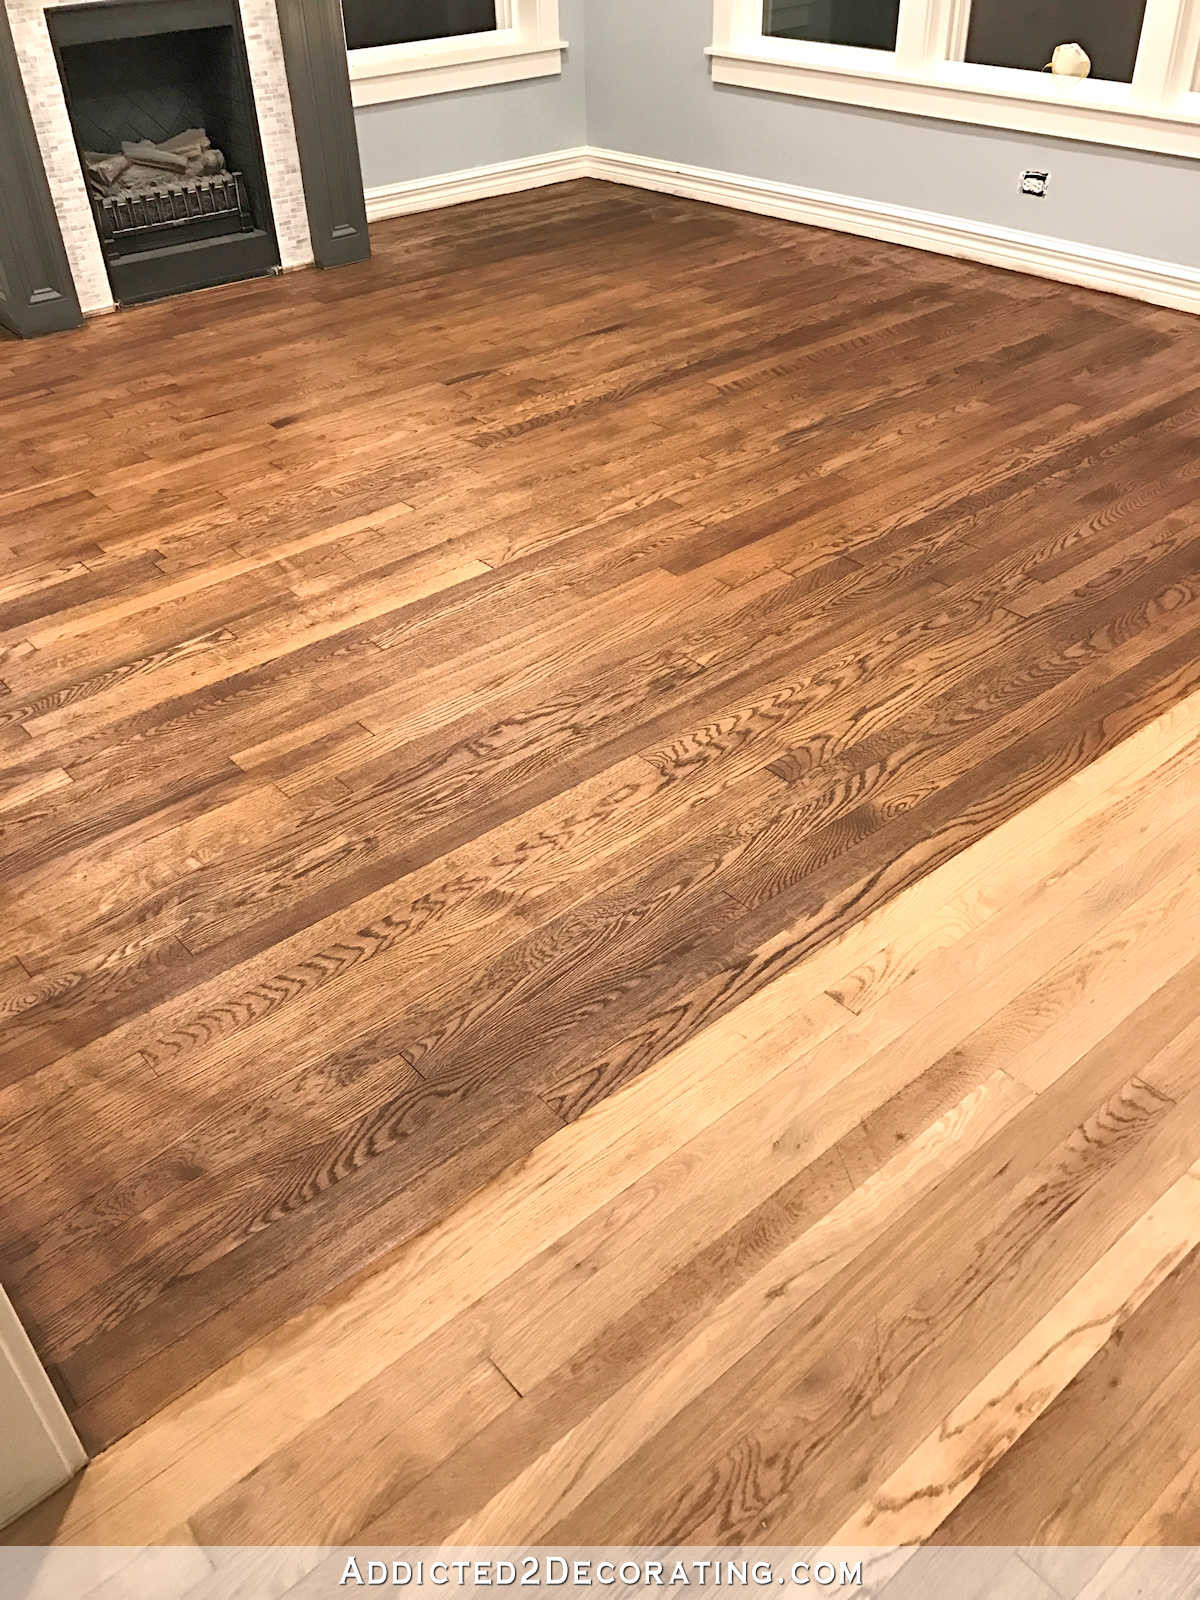 felt pads for hardwood floors of adventures in staining my red oak hardwood floors products process inside staining red oak hardwood floors 7 stain on the living room floor